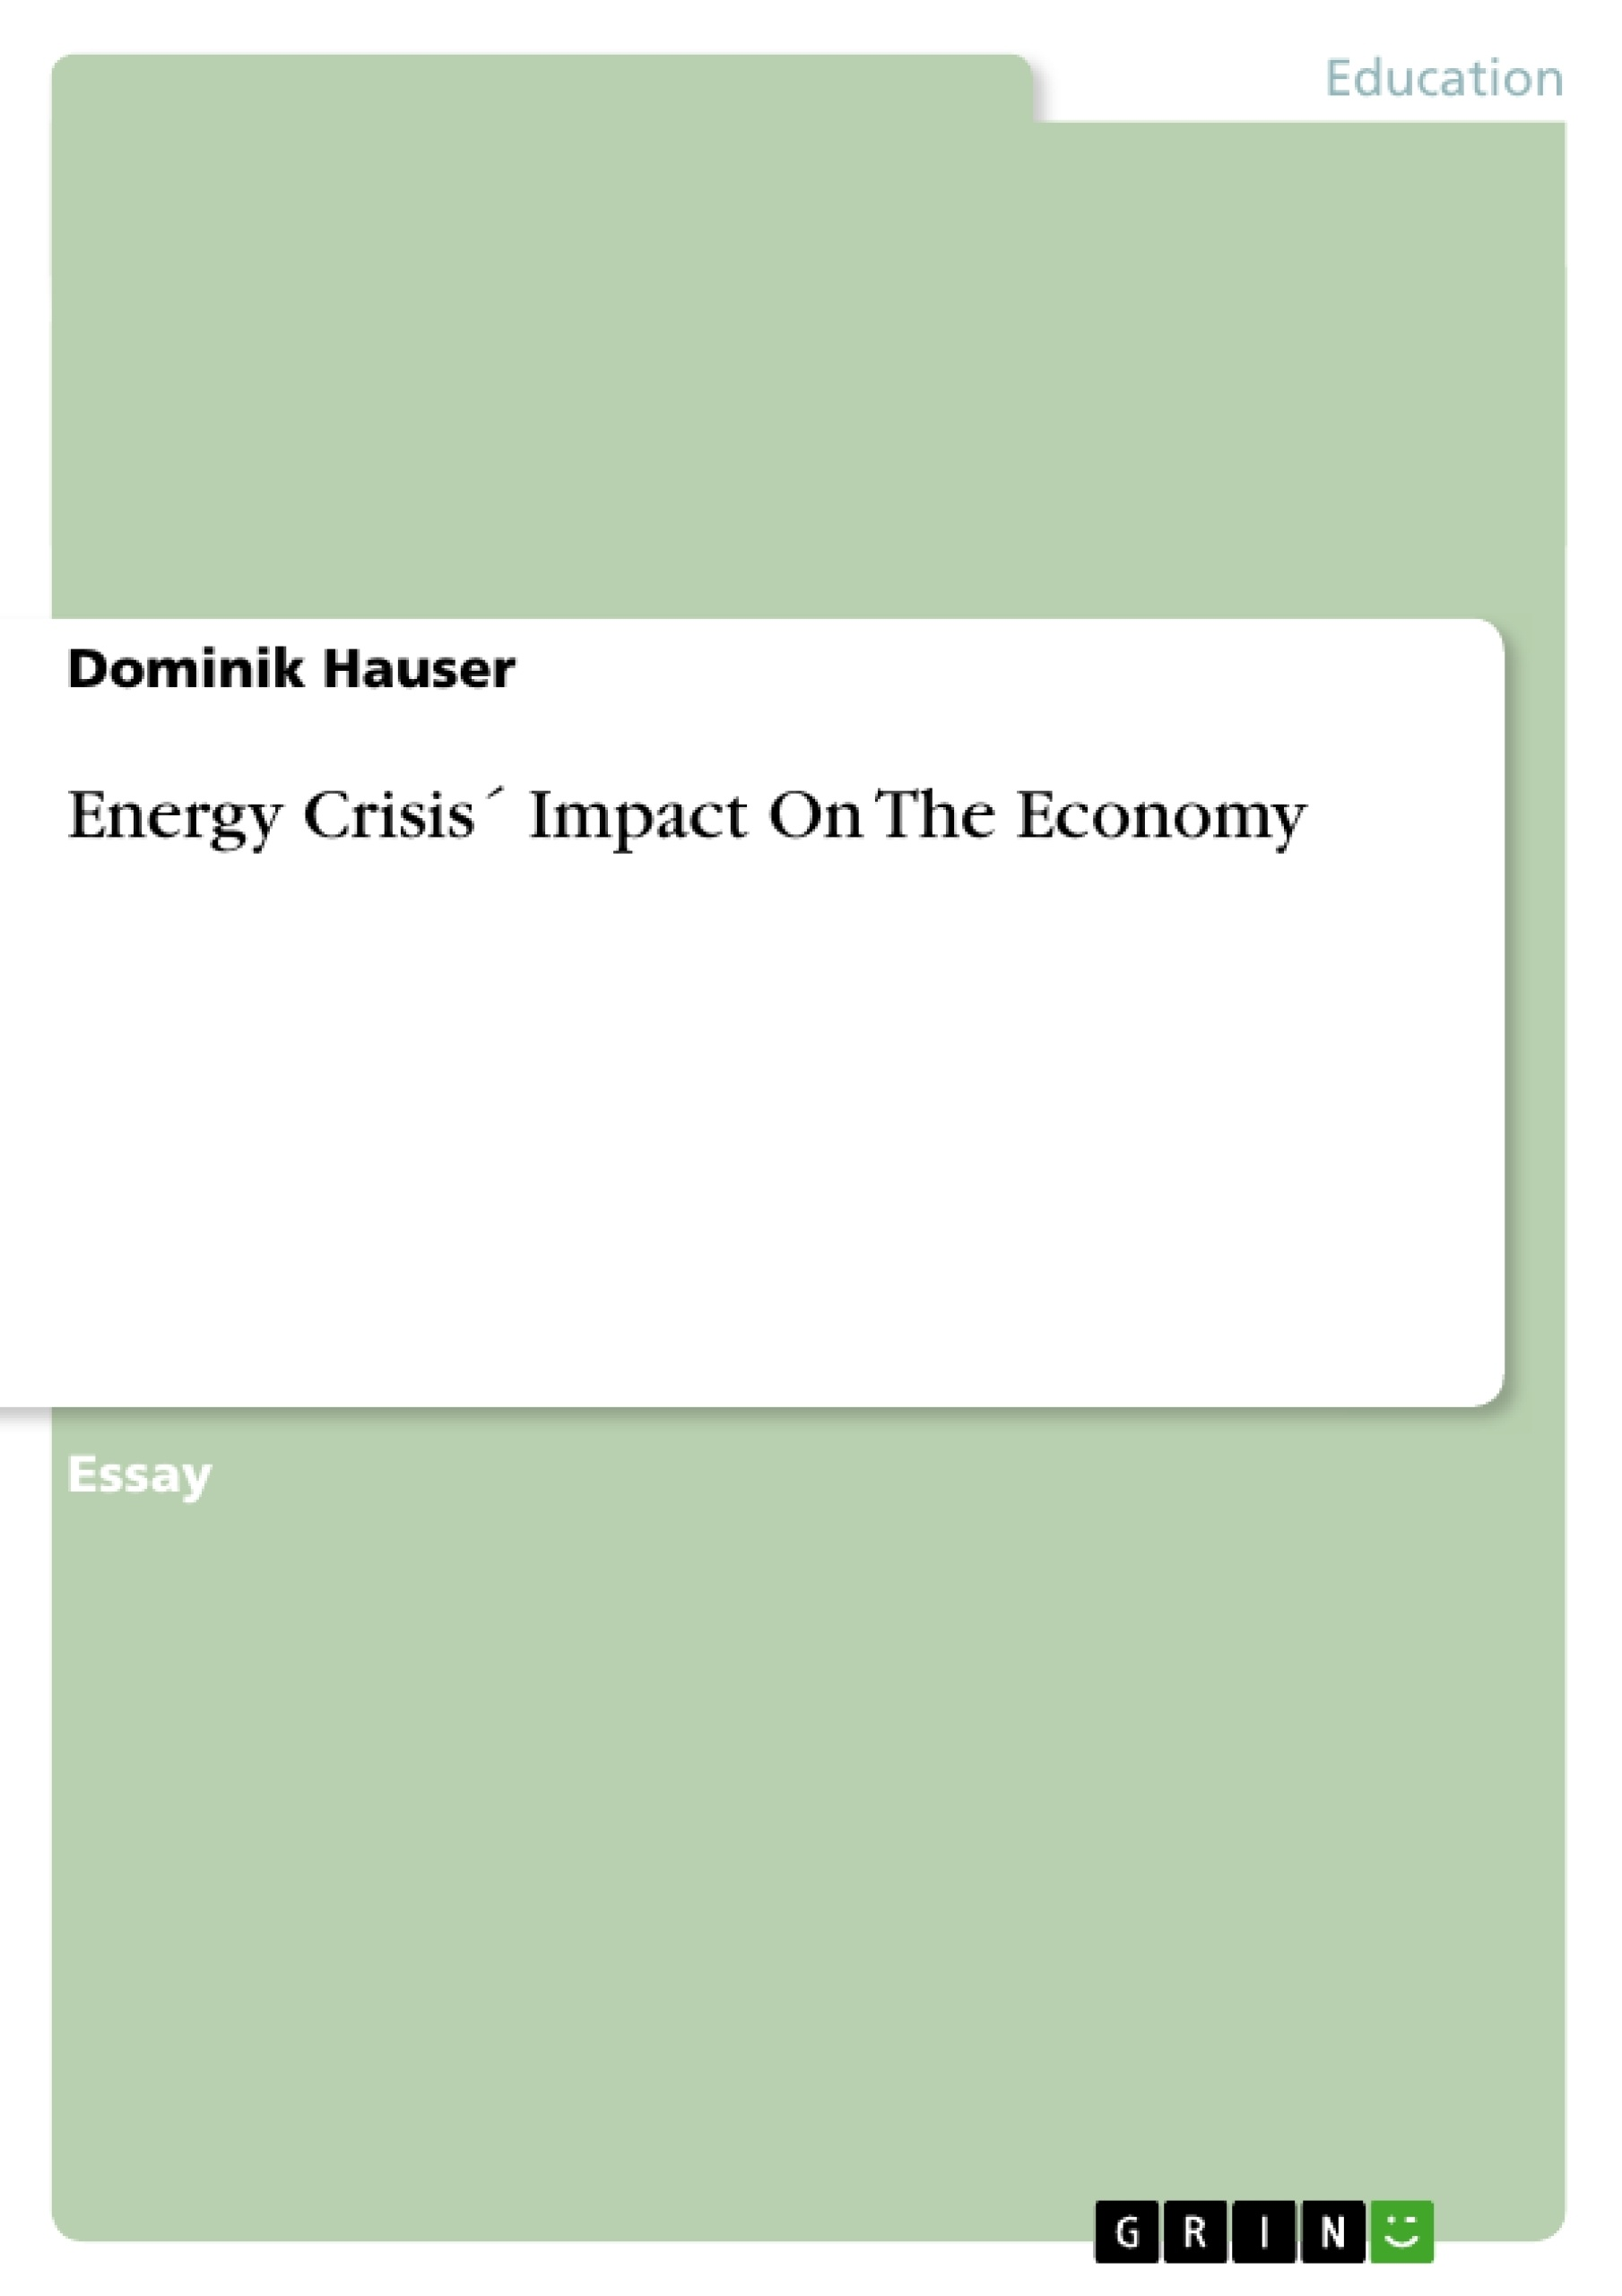 energy crisis acute impact on the economy publish your master s energy crisisacute impact on the economy publish your master s thesis bachelor s thesis essay or term paper